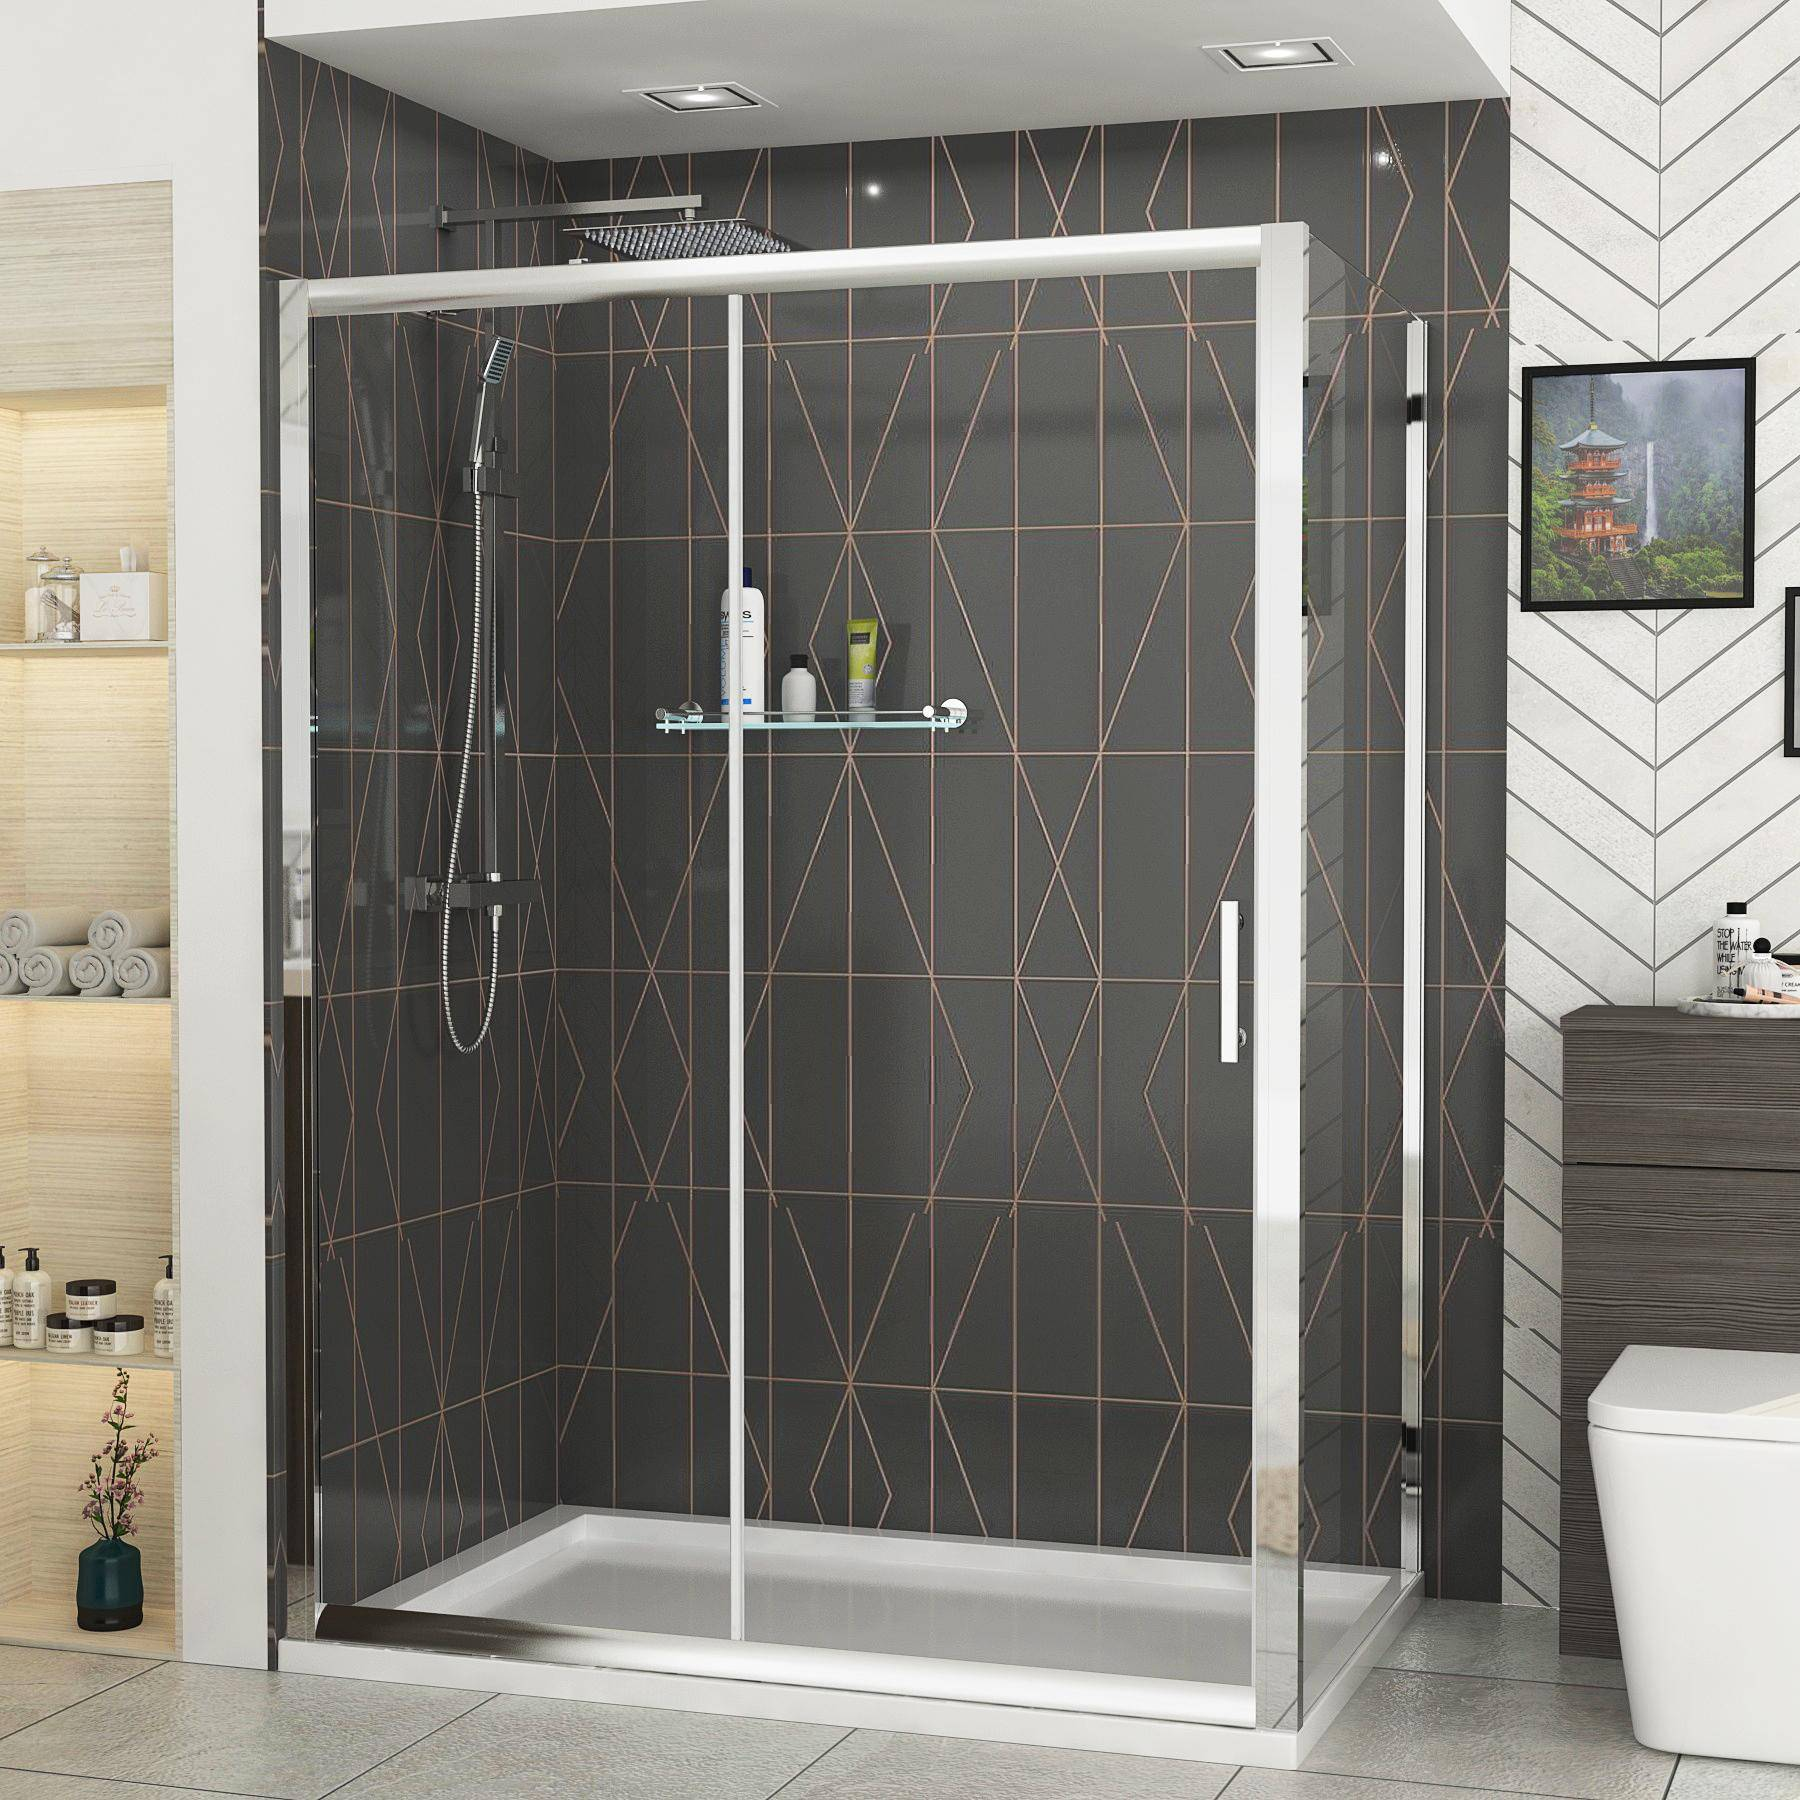 Royal Bathrooms Grand 1200 x 900mm Sliding Door Rectangle Shower Enclosure wih Pearlstone Tray